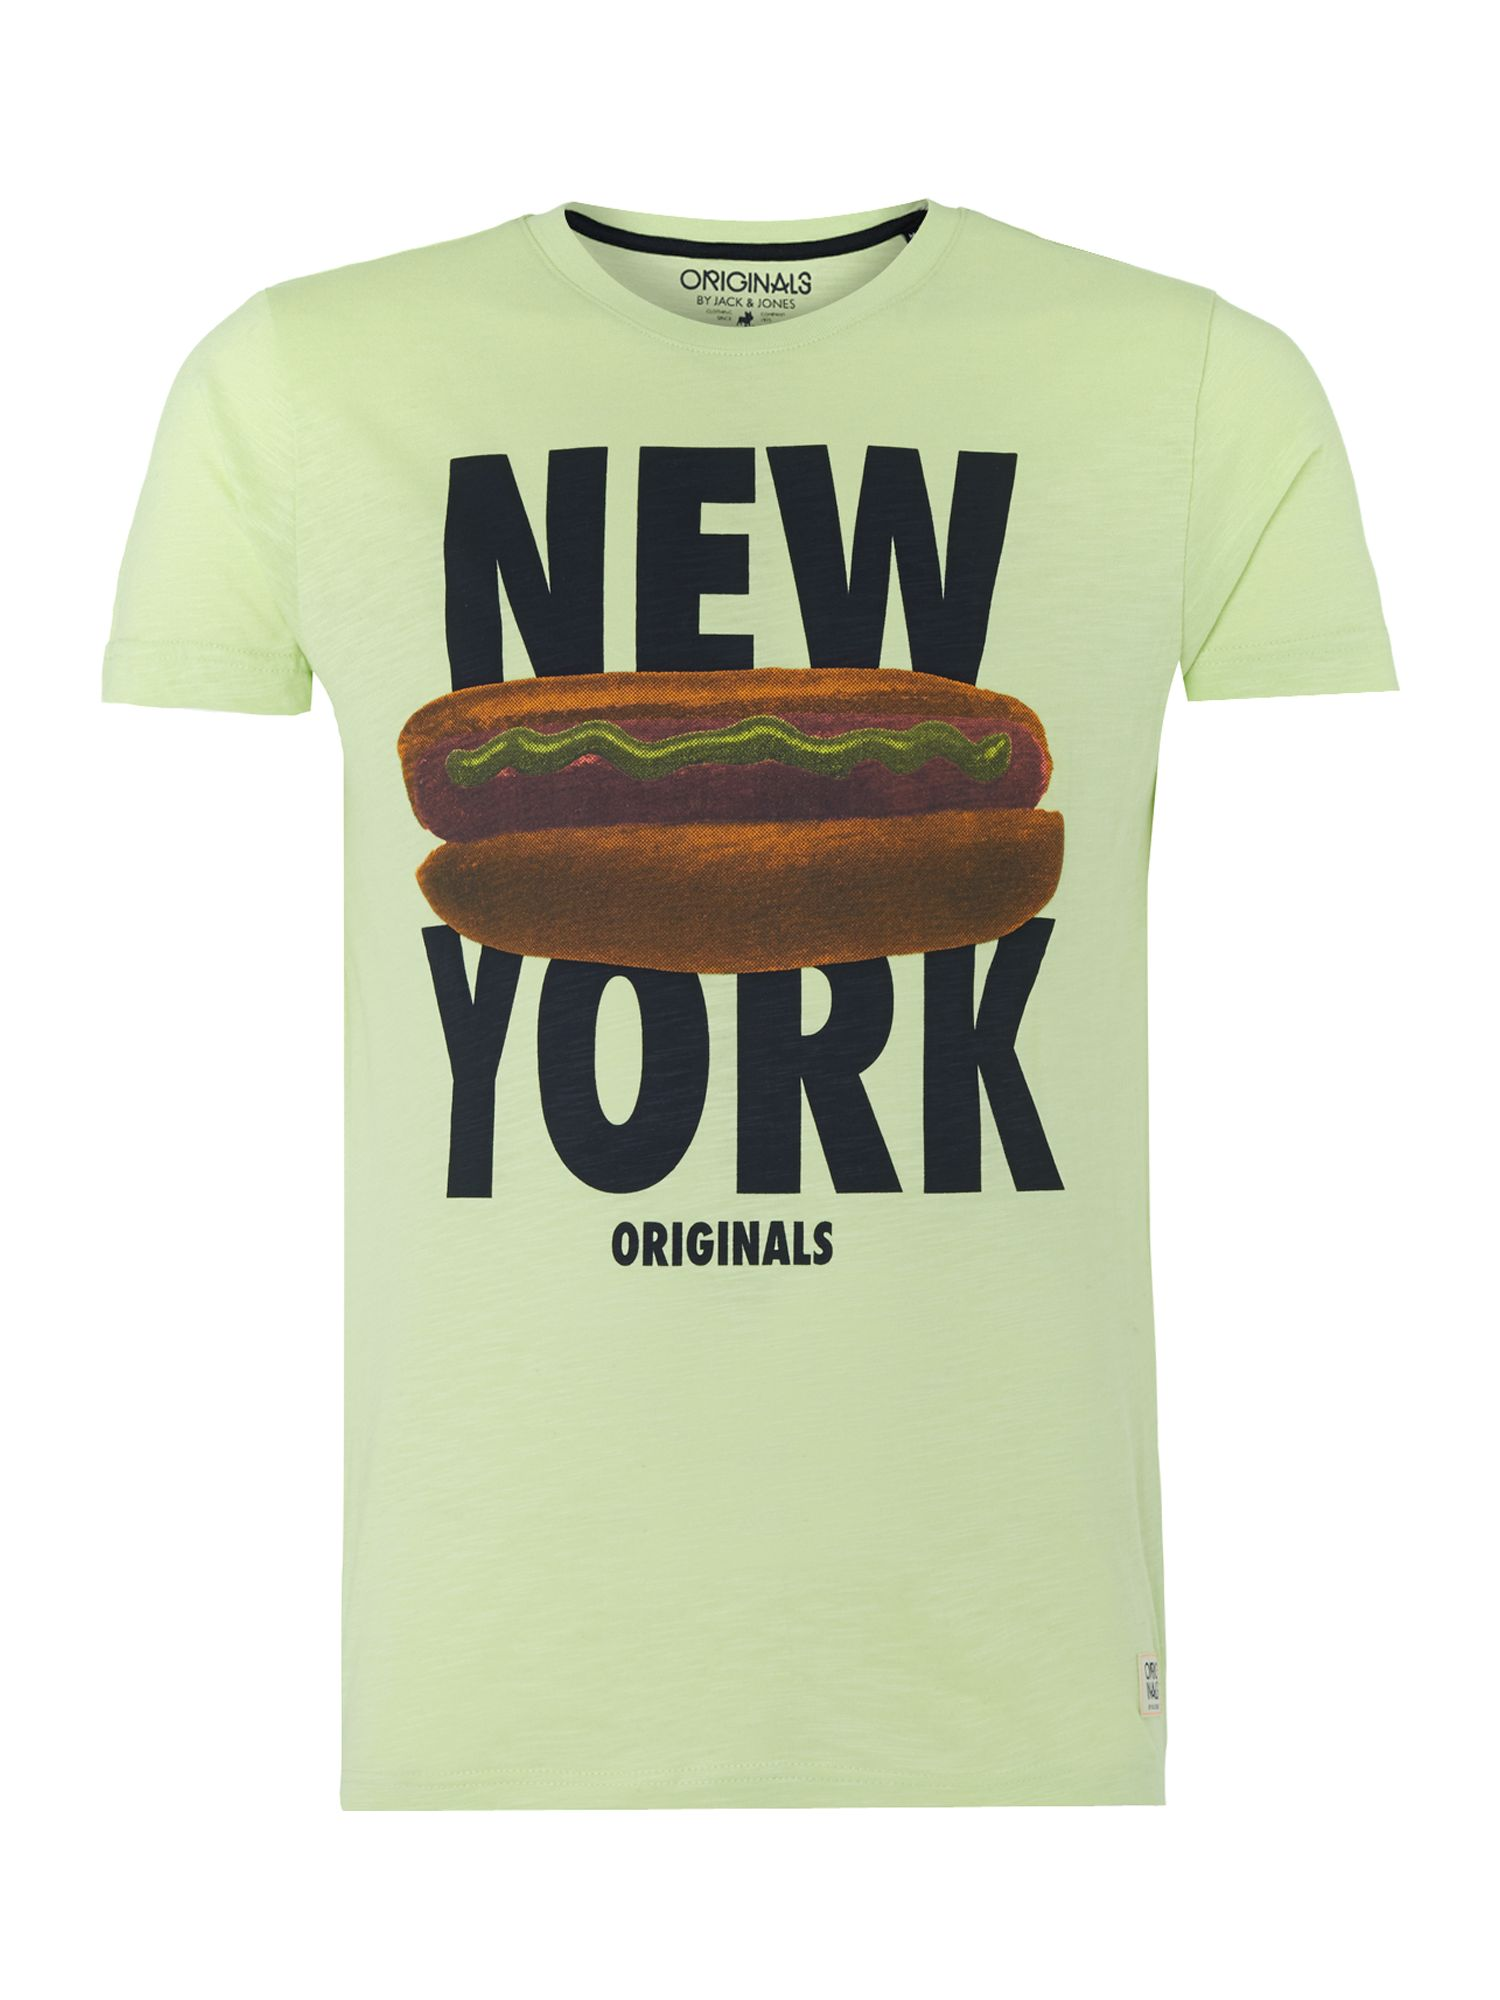 NY Night short sleeve t shirt